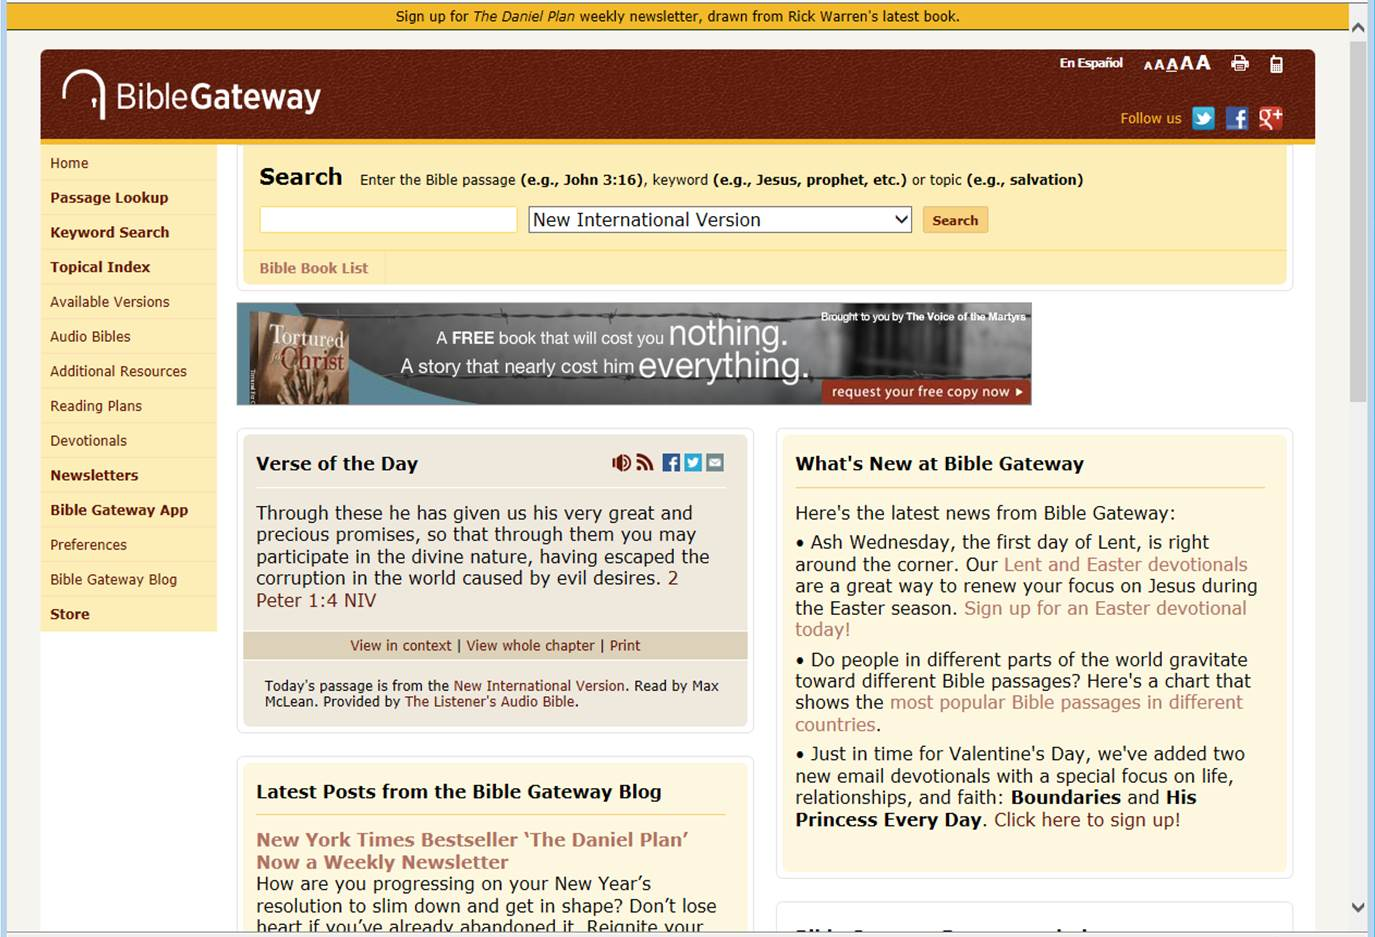 Bible Gateway, World's Most Visited Christian Website